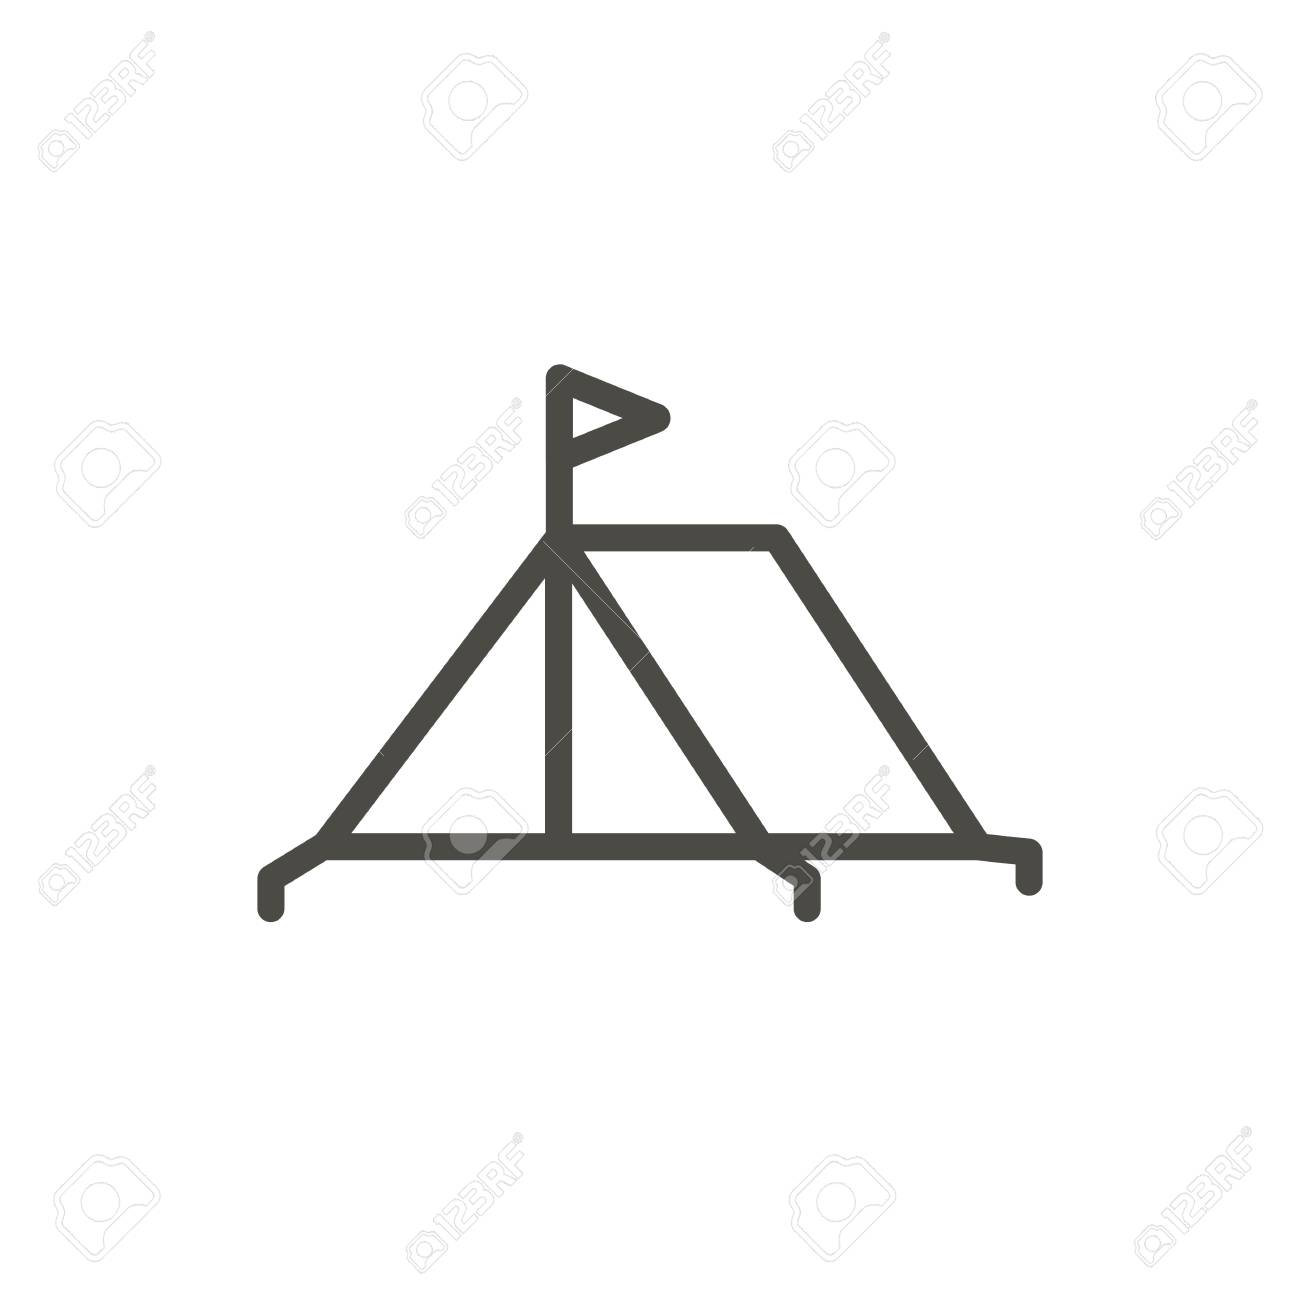 Tent Icon Vector Line Camping Symbol Isolated Trendy Flat Outline Royalty Free Cliparts Vectors And Stock Illustration Image 102156815